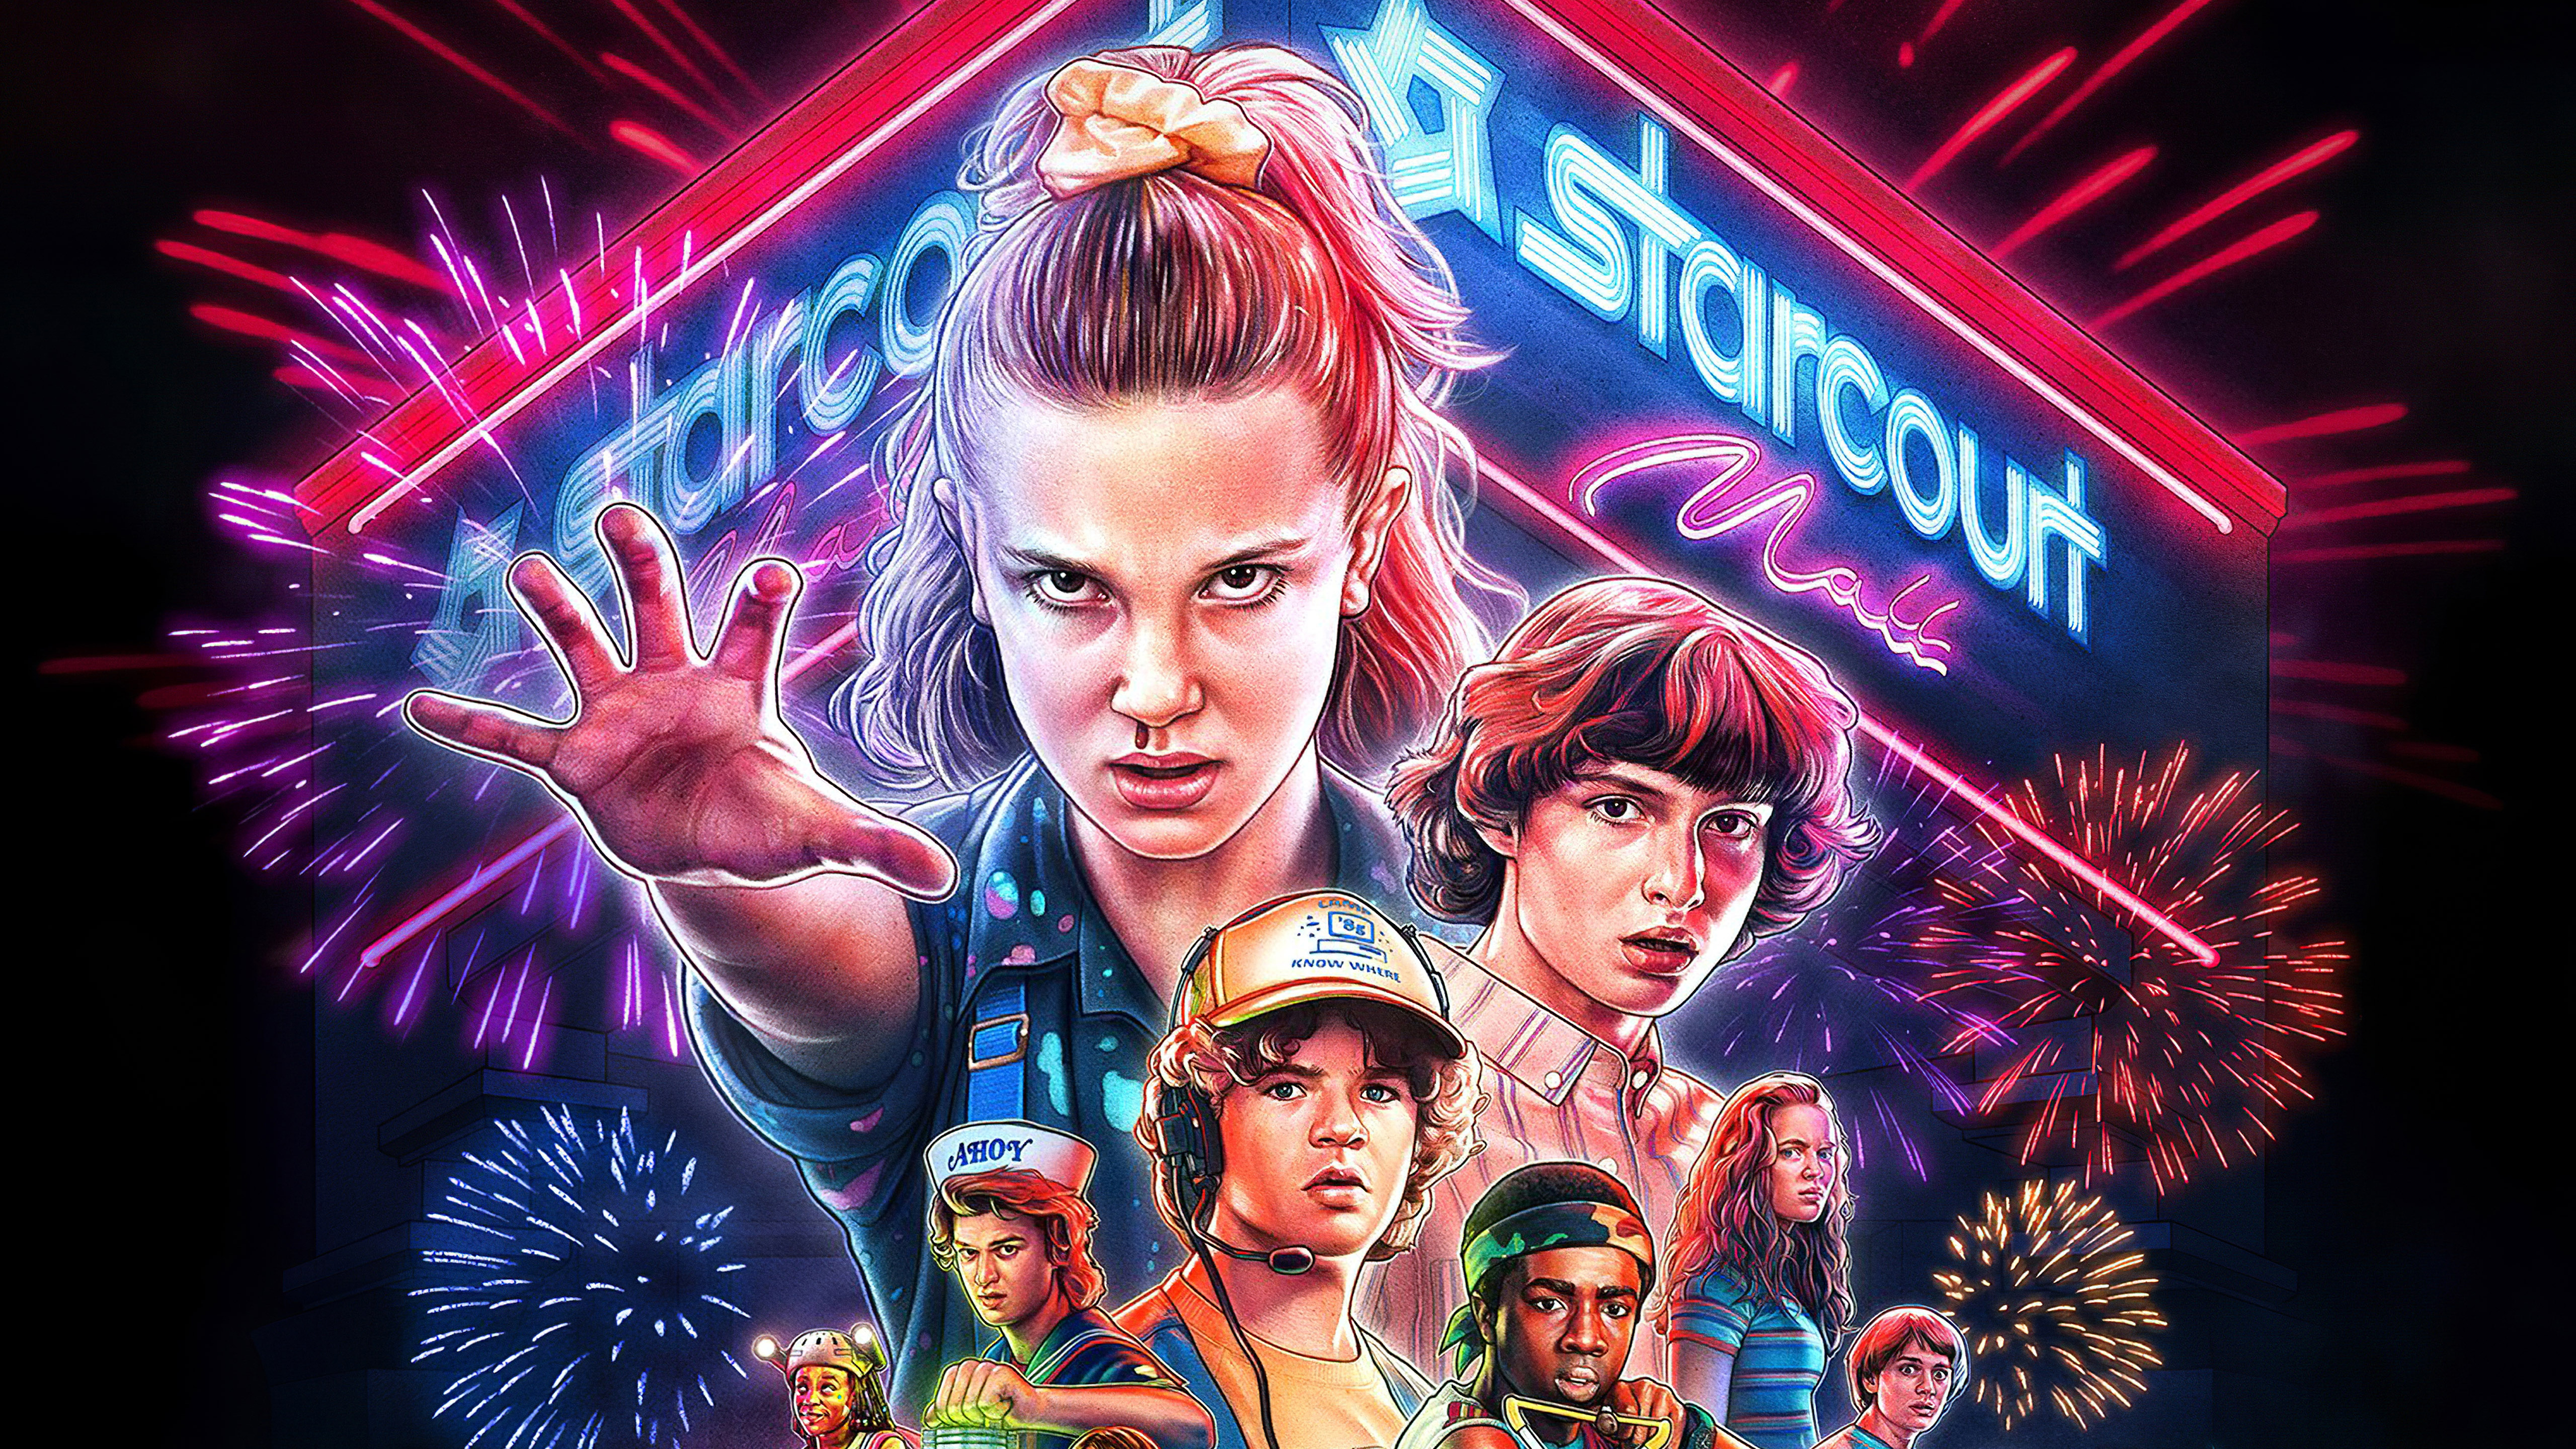 Stranger things season 3 2019 4k 5k hd tv shows 4k - Tv series wallpaper 4k ...